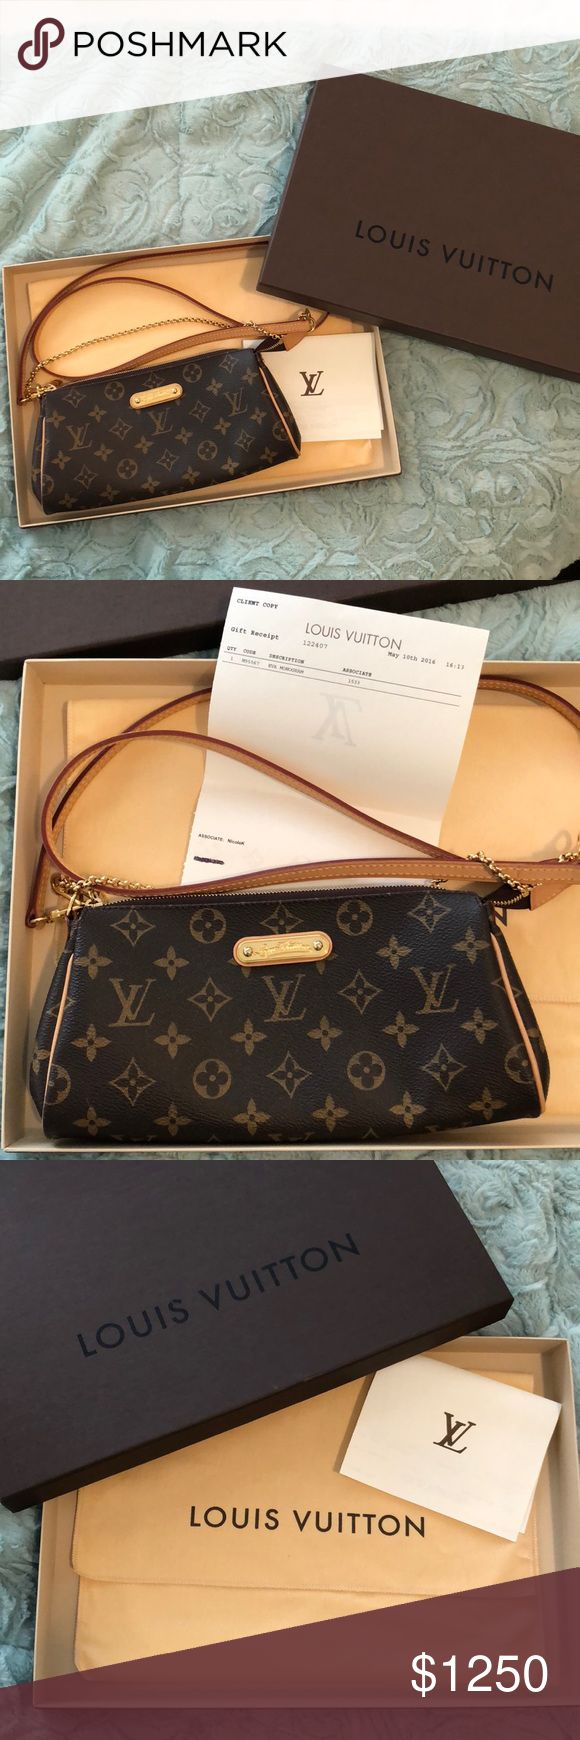 Louis Vuitton Eva Monogram **100% Authentic** Receipt Included - Louis Vuitton Eva Monogram **100% Authentic** PERFECT CONDITION  Bag was made and purchased in 2016.  Purchased May 10, 2016  Date Stamp MB0156 - made in France  Comes with crossbody strap, dust bag, box and receipt NO MODELING/NO TRADES  Reasonable offers welcome. I will let it go for the right offer at my discretion. LV no longer produces/sells this bag. Guaranteed to ship same day if purchased before 10am cst (excludes…